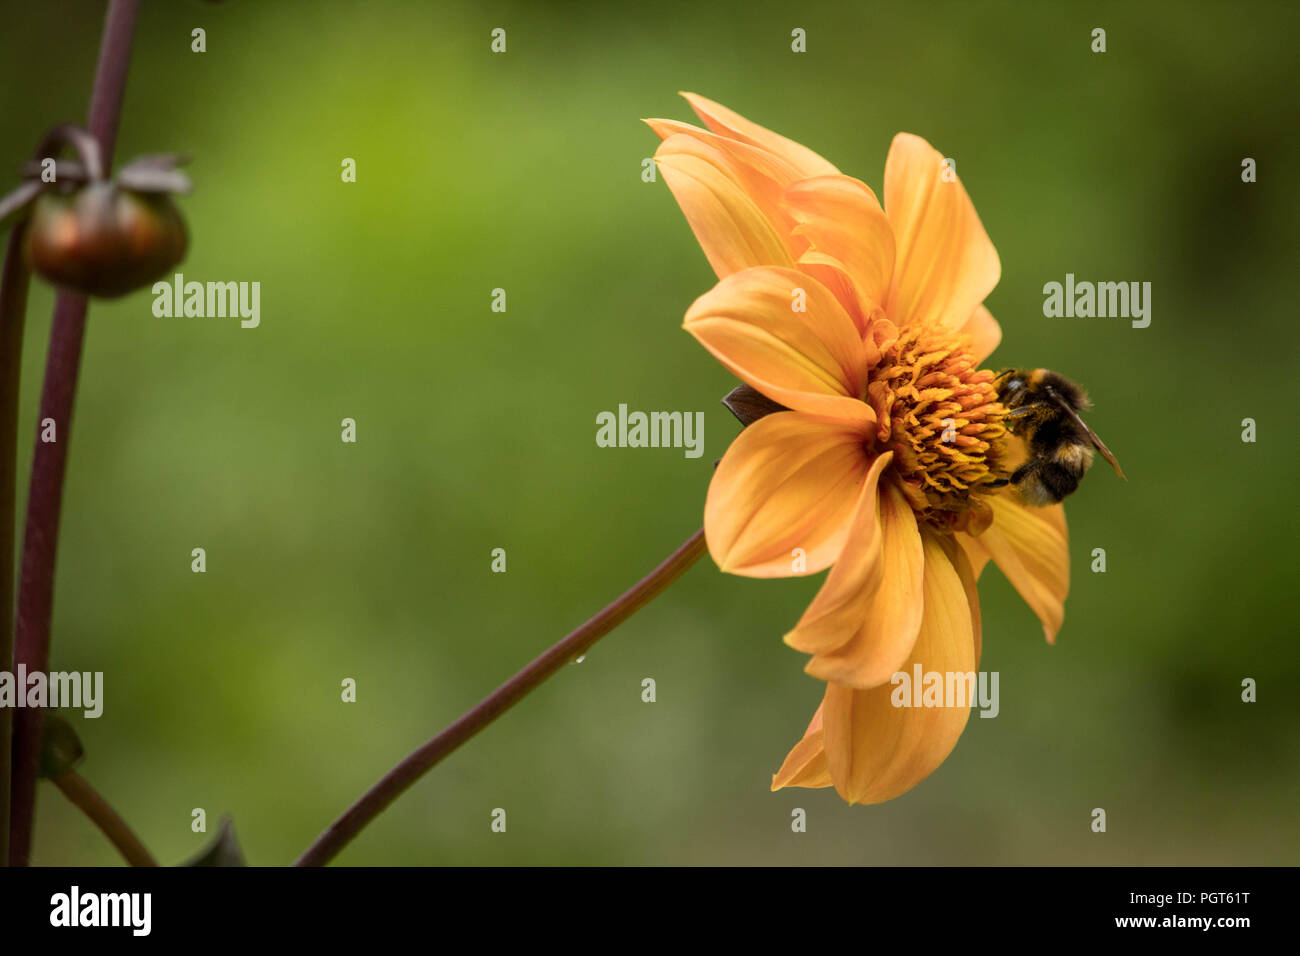 British Summer Garden after rain - a bee settled on an orange Dahlia sipping nectar. - Stock Image